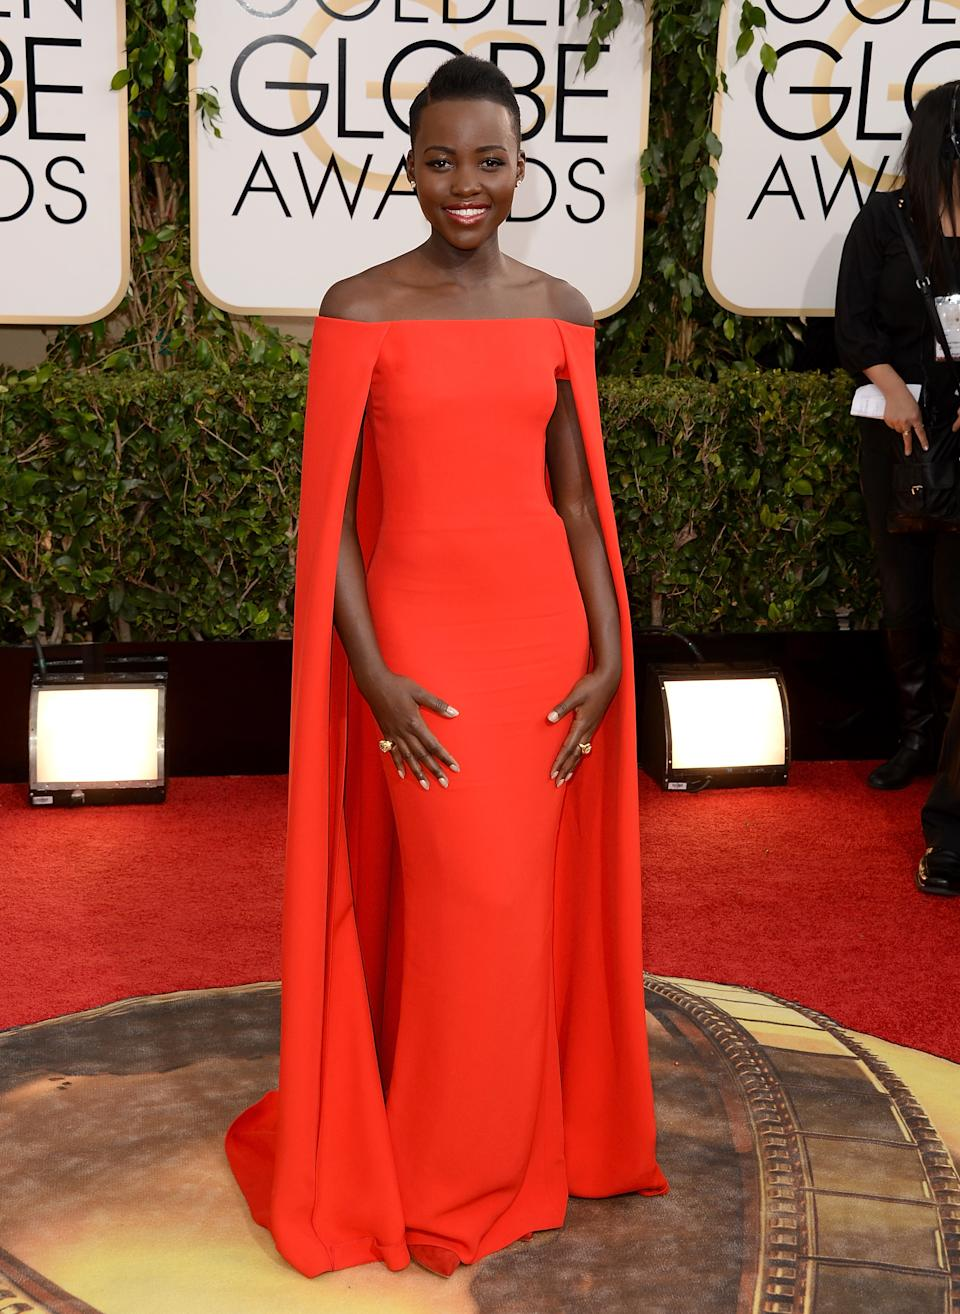 "<p>As you might recall, 2014 was a major year for Lupita Nyong'o. The ""12 Years a Slave"" actress not only rocked the red carpet in this bold, red, Ralph Lauren gown, but she was also nominated for Best Supporting Actress in a Motion Picture. (Image via Getty Images)</p>"